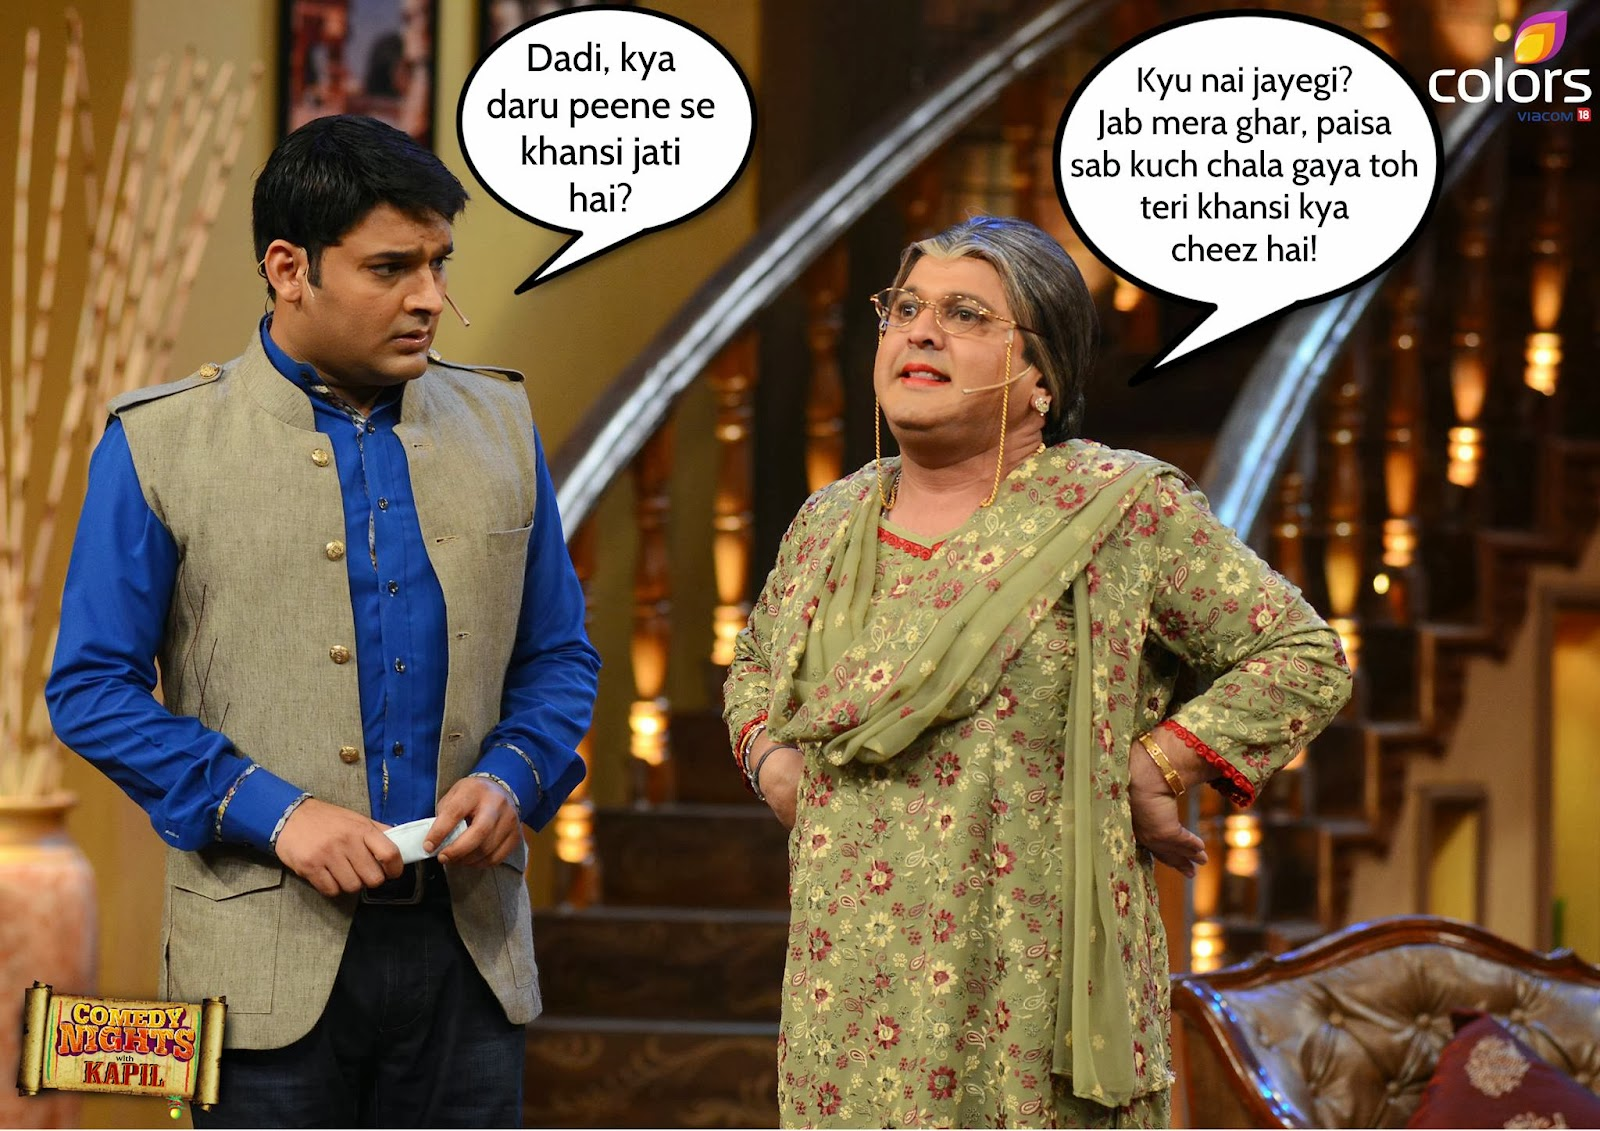 colors tv comedy nights with kapil